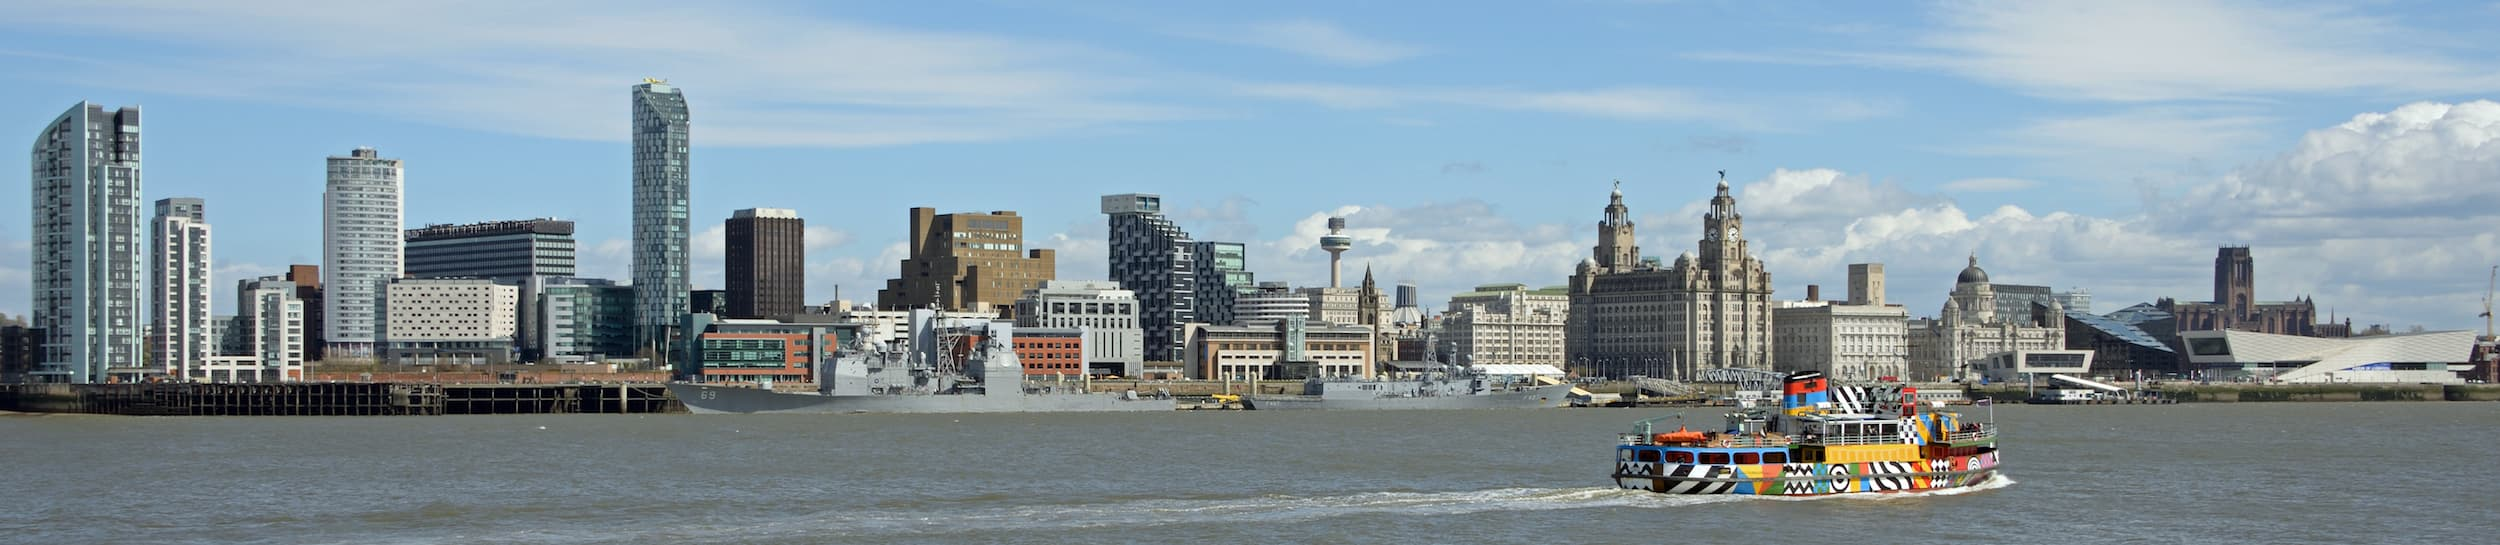 Skyline of Birkenhead